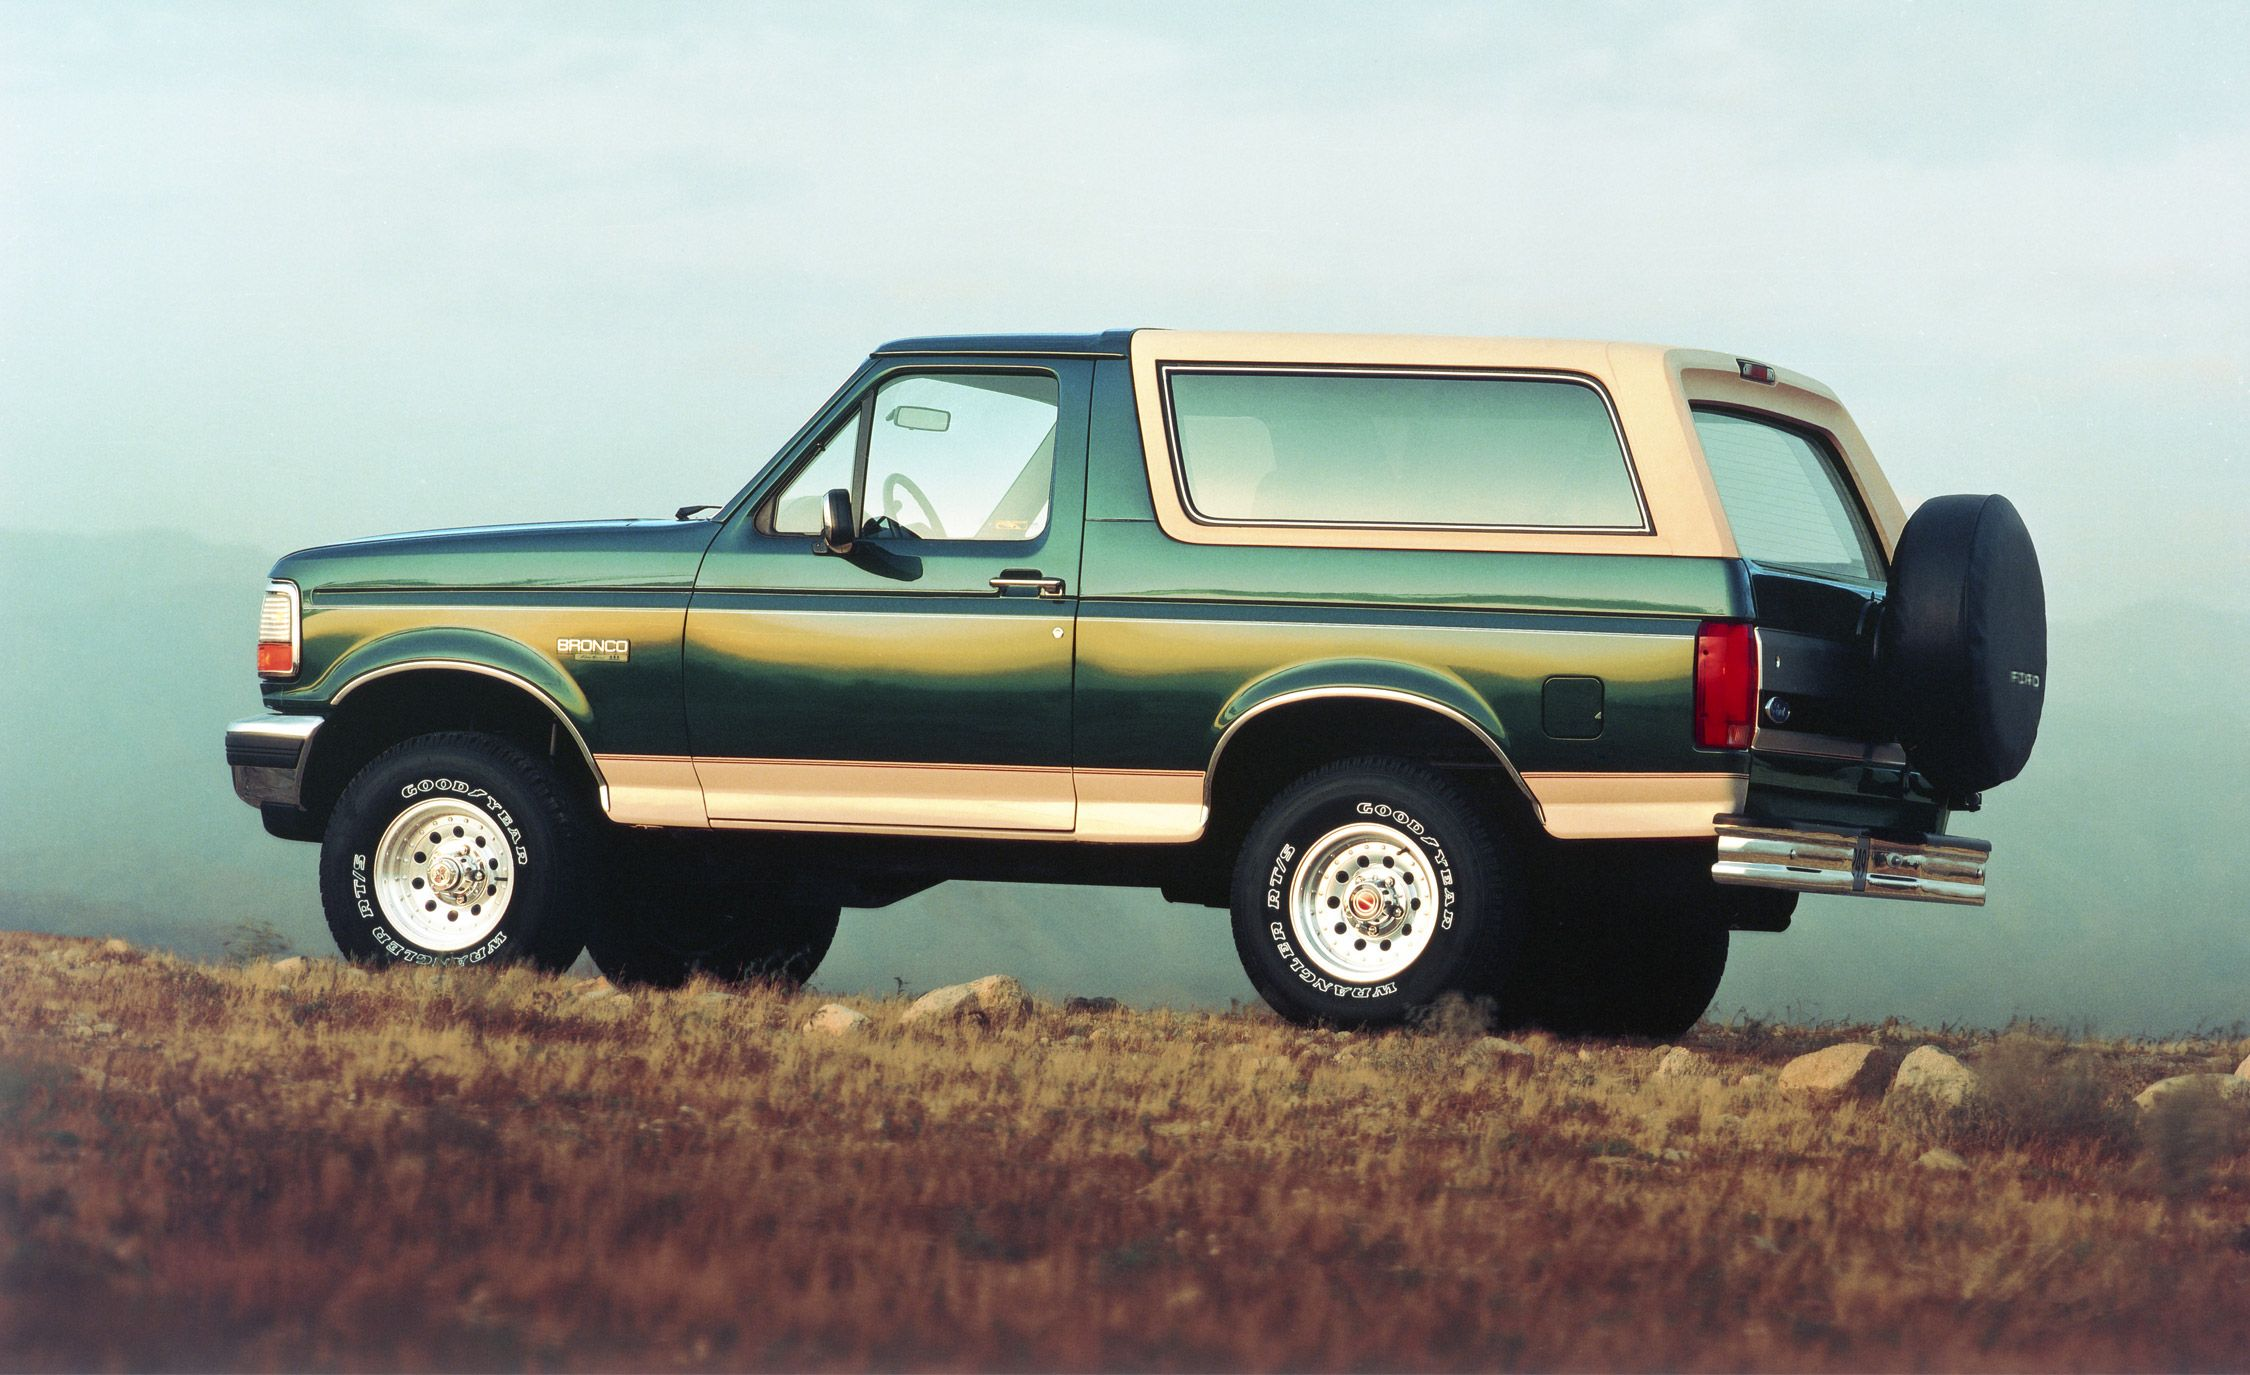 Ezra dyer august 2018 1993 ford bronco eddie bauer placement 1531930982